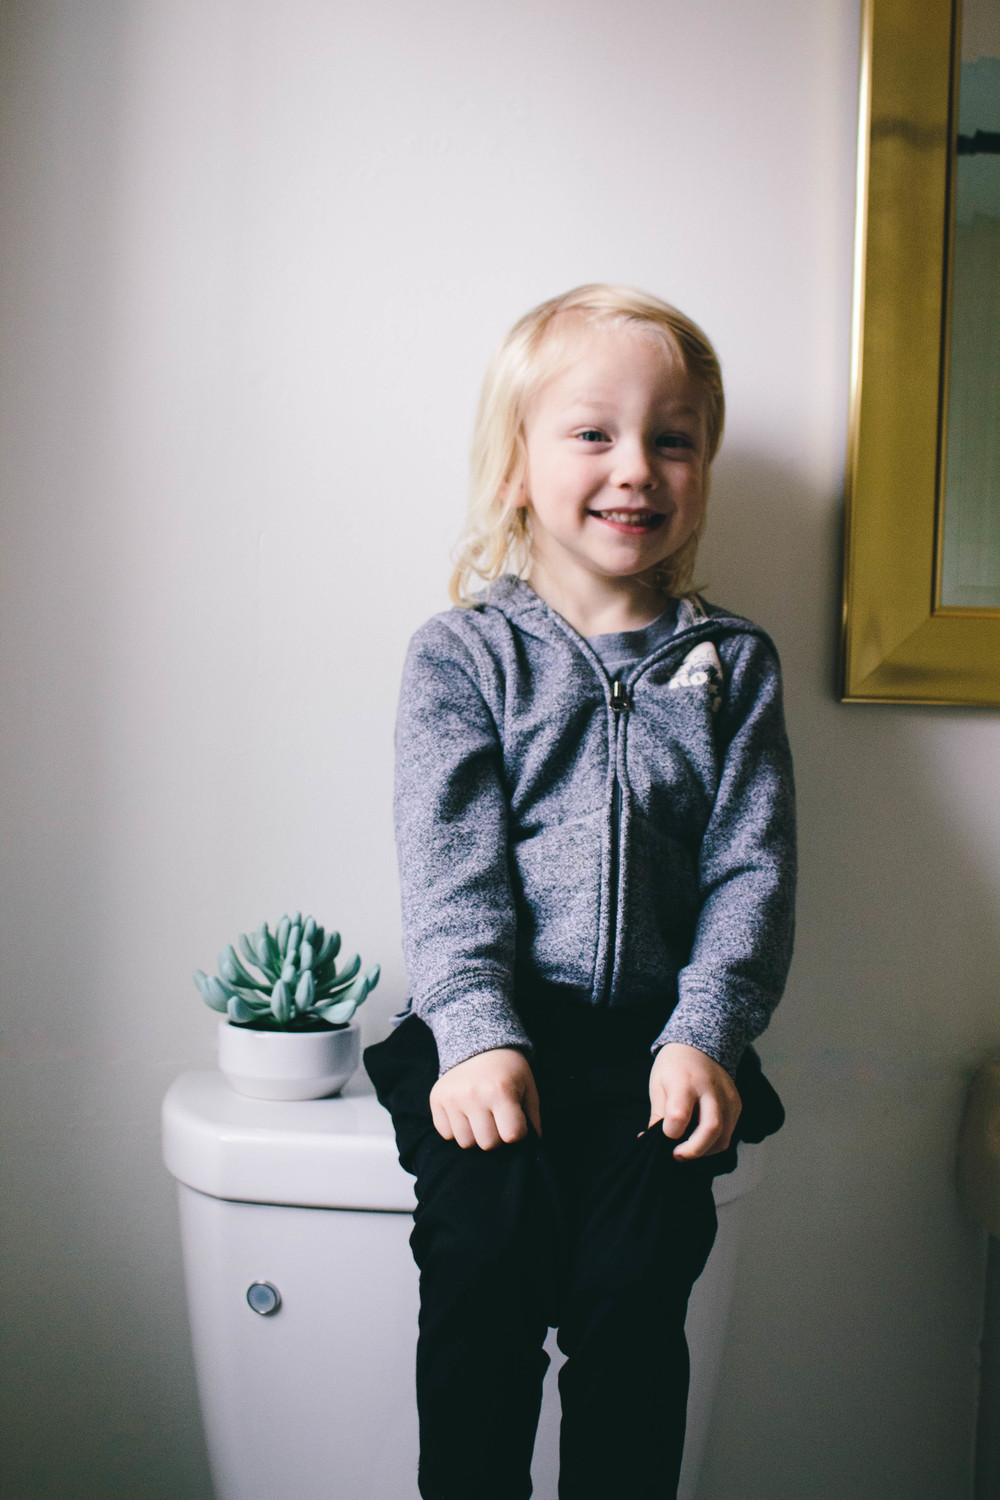 potty training tips and tricks, parenting, motherhood. how to get your toddler to use the bathroom